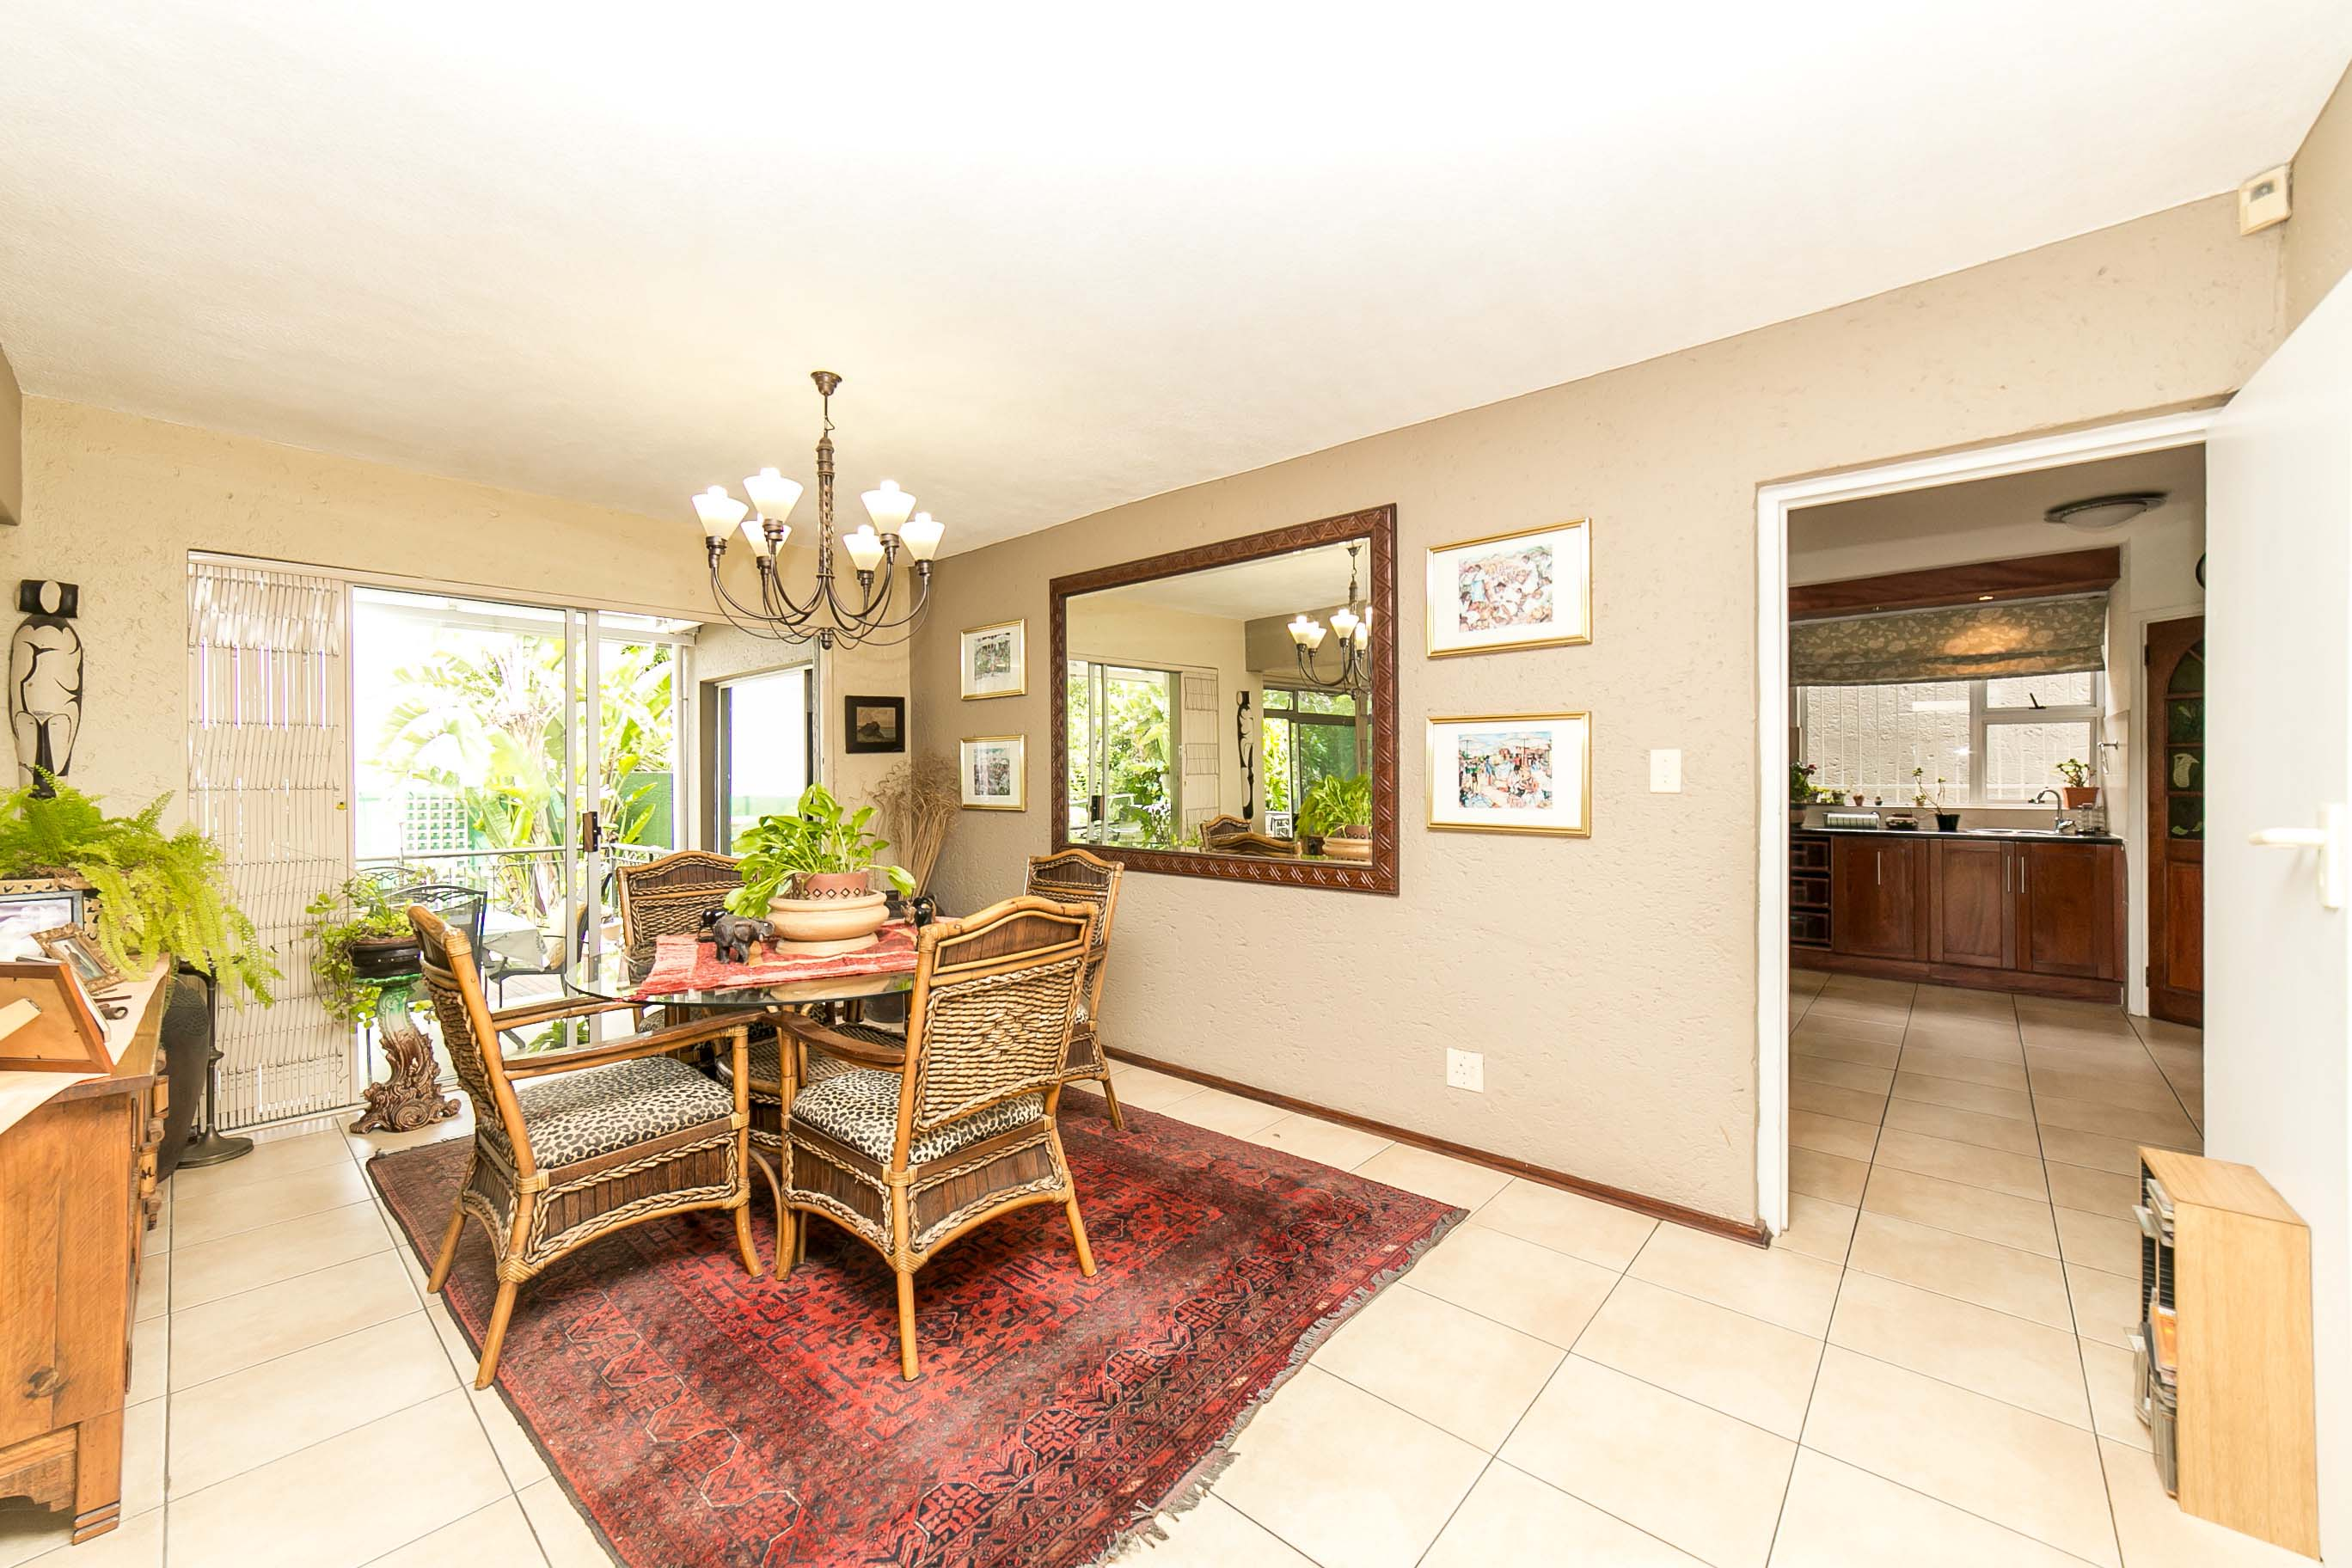 4 Bedroom House for sale in Lonehill ENT0082001 : photo#6